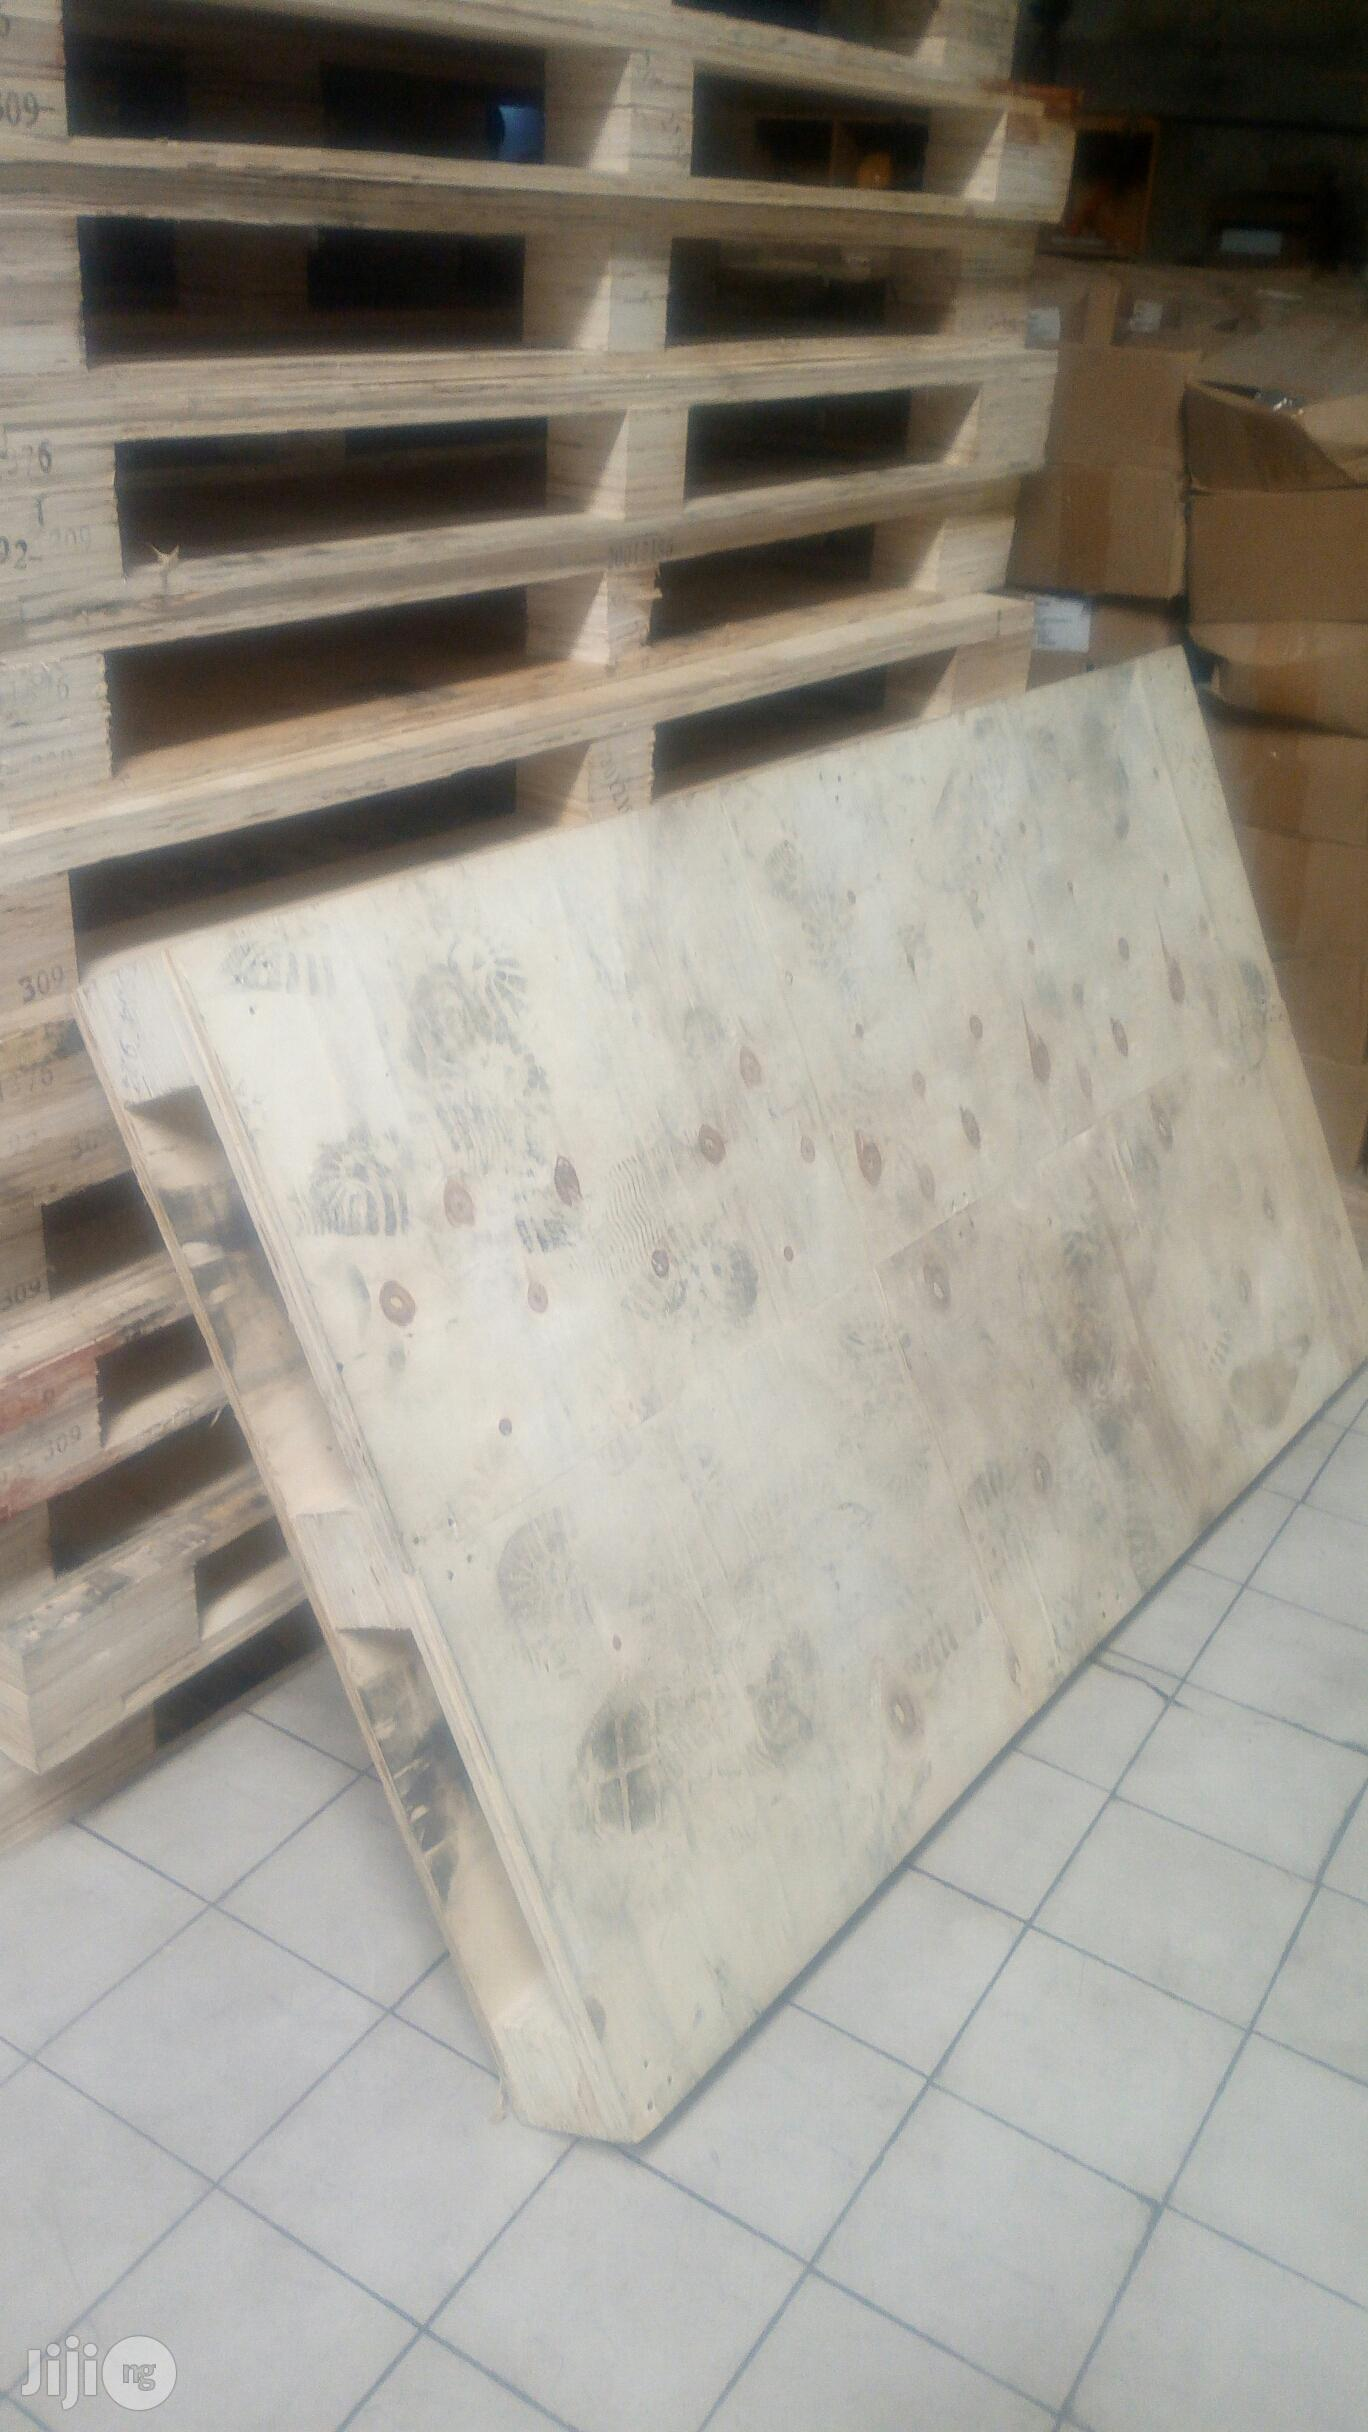 Imported Wooden Pallet | Store Equipment for sale in Alimosho, Lagos State, Nigeria